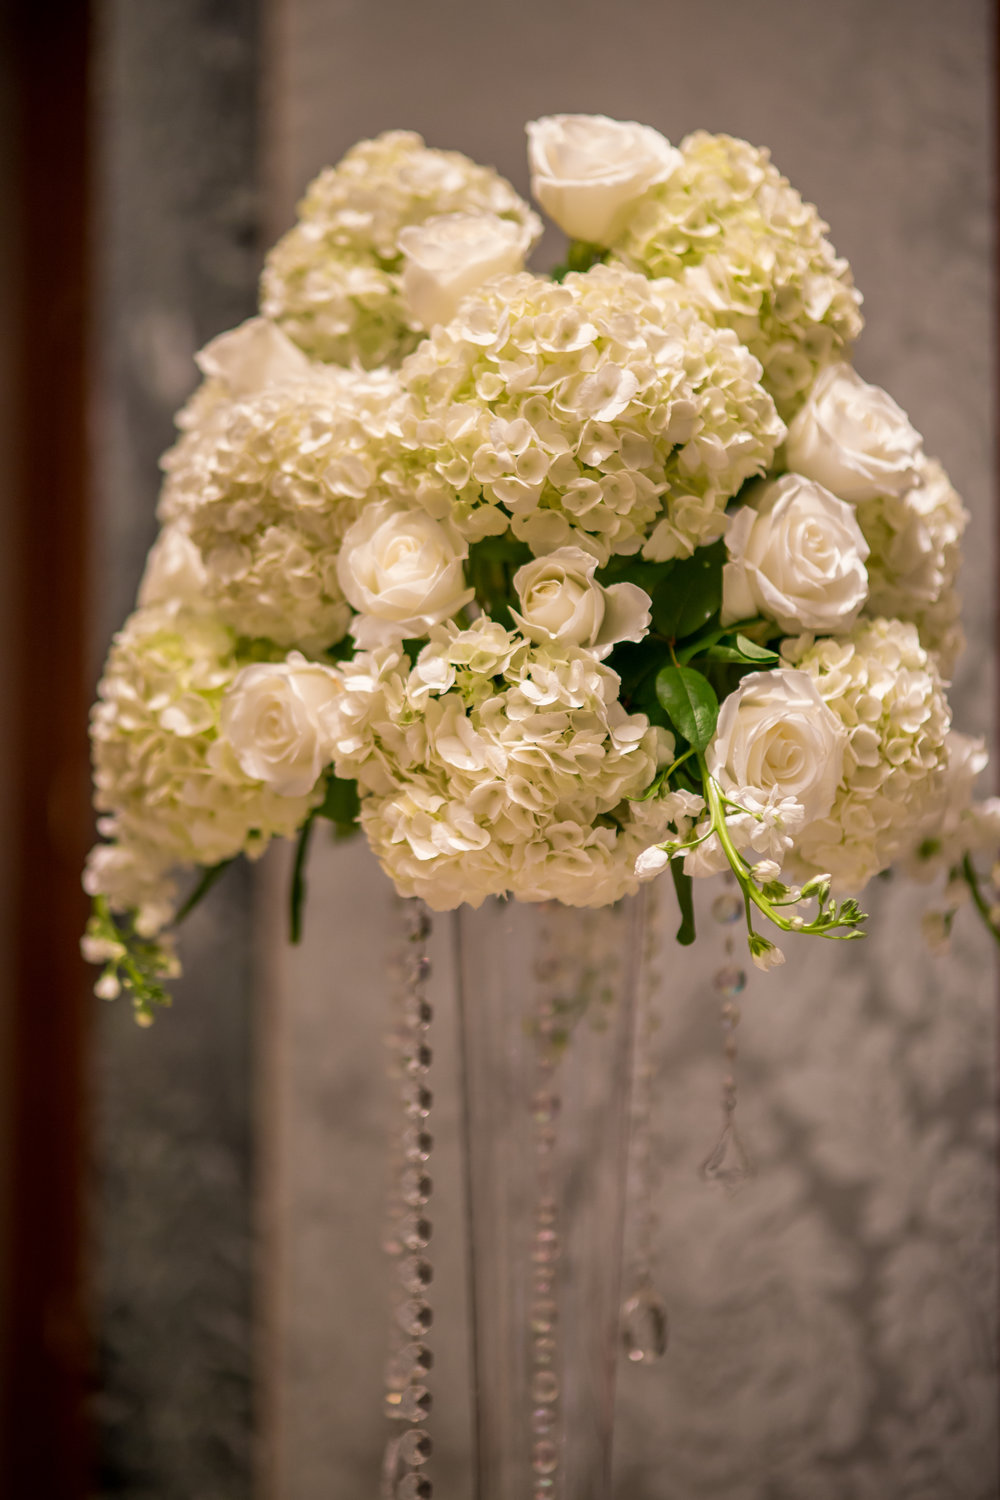 Pilsner vases dripping with crystals were topped with arrangements of hydrangea, roses, and stock.